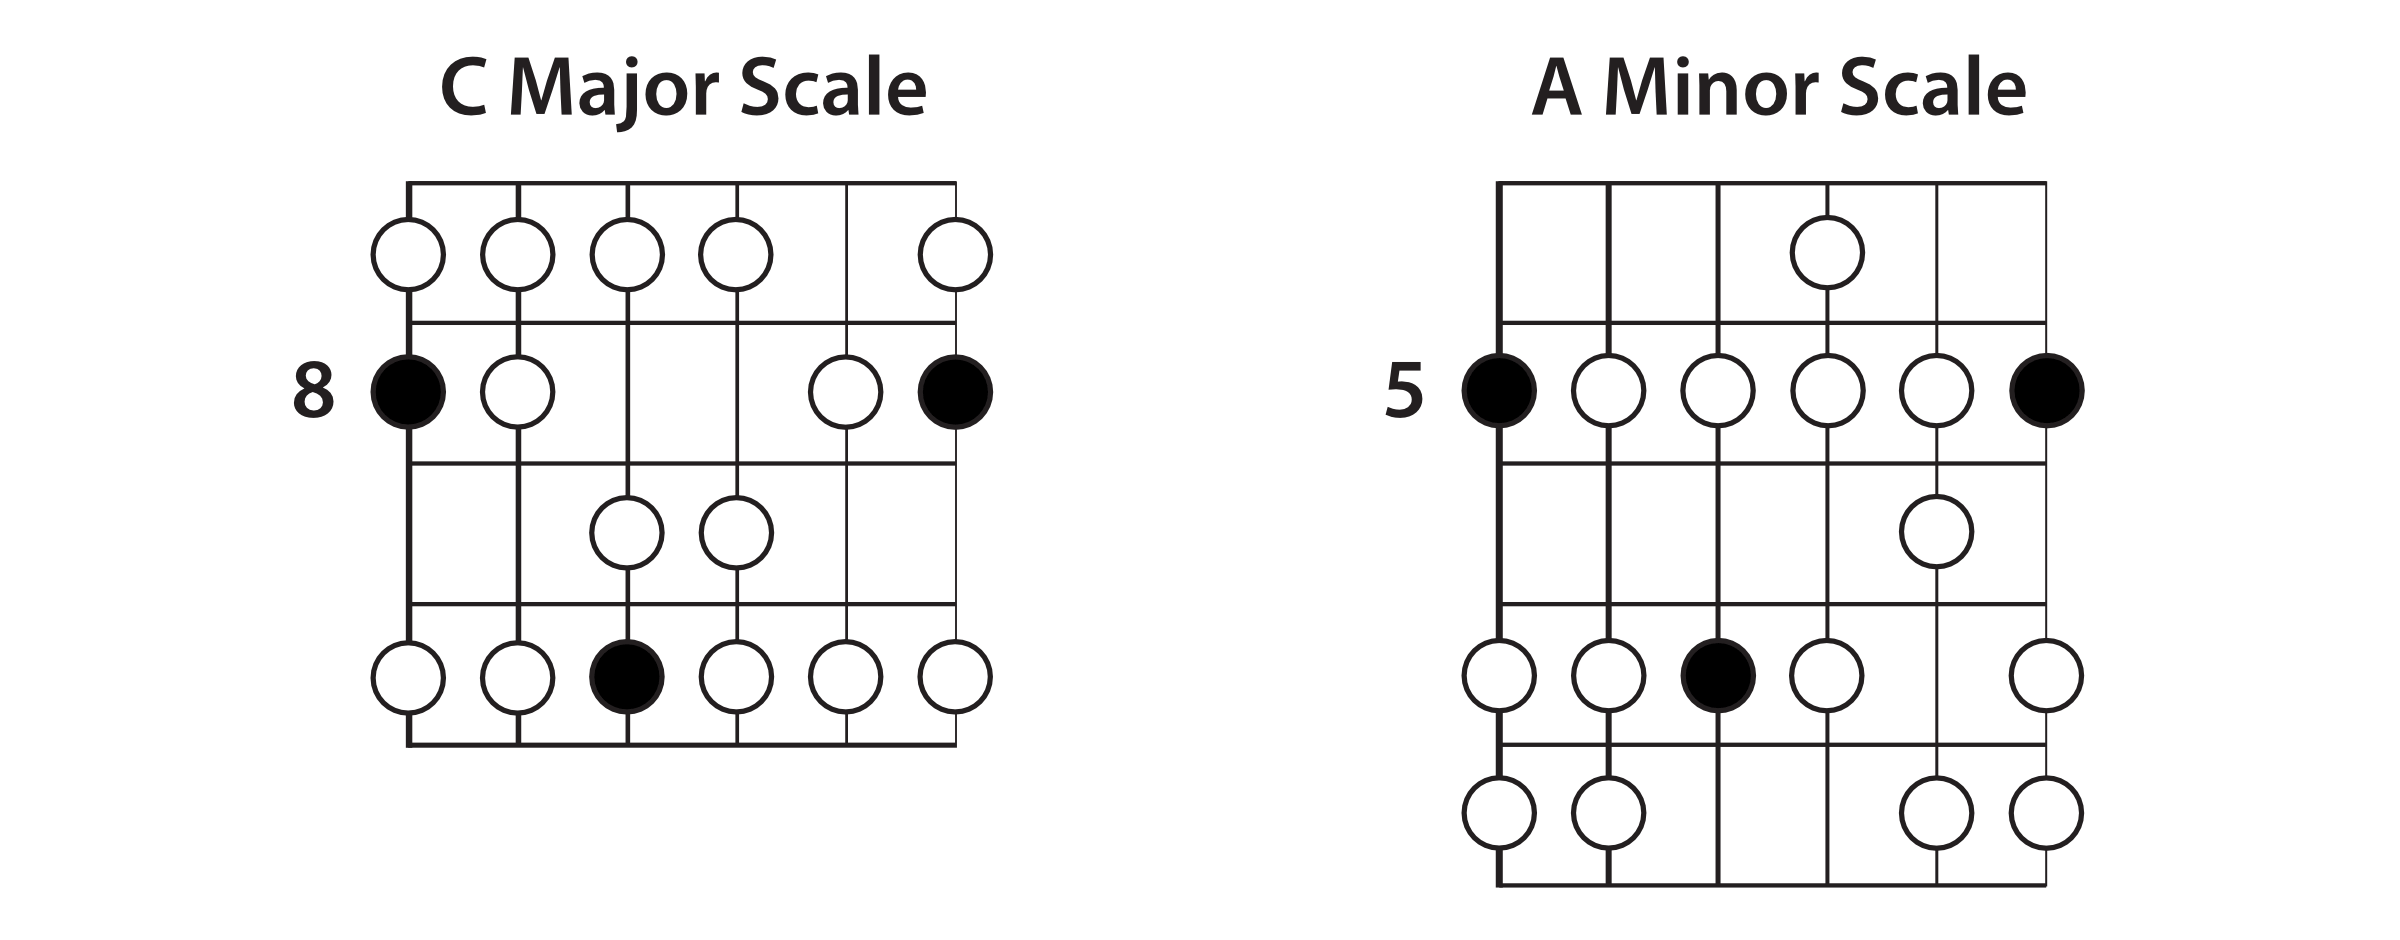 C Major & A Minor Scales